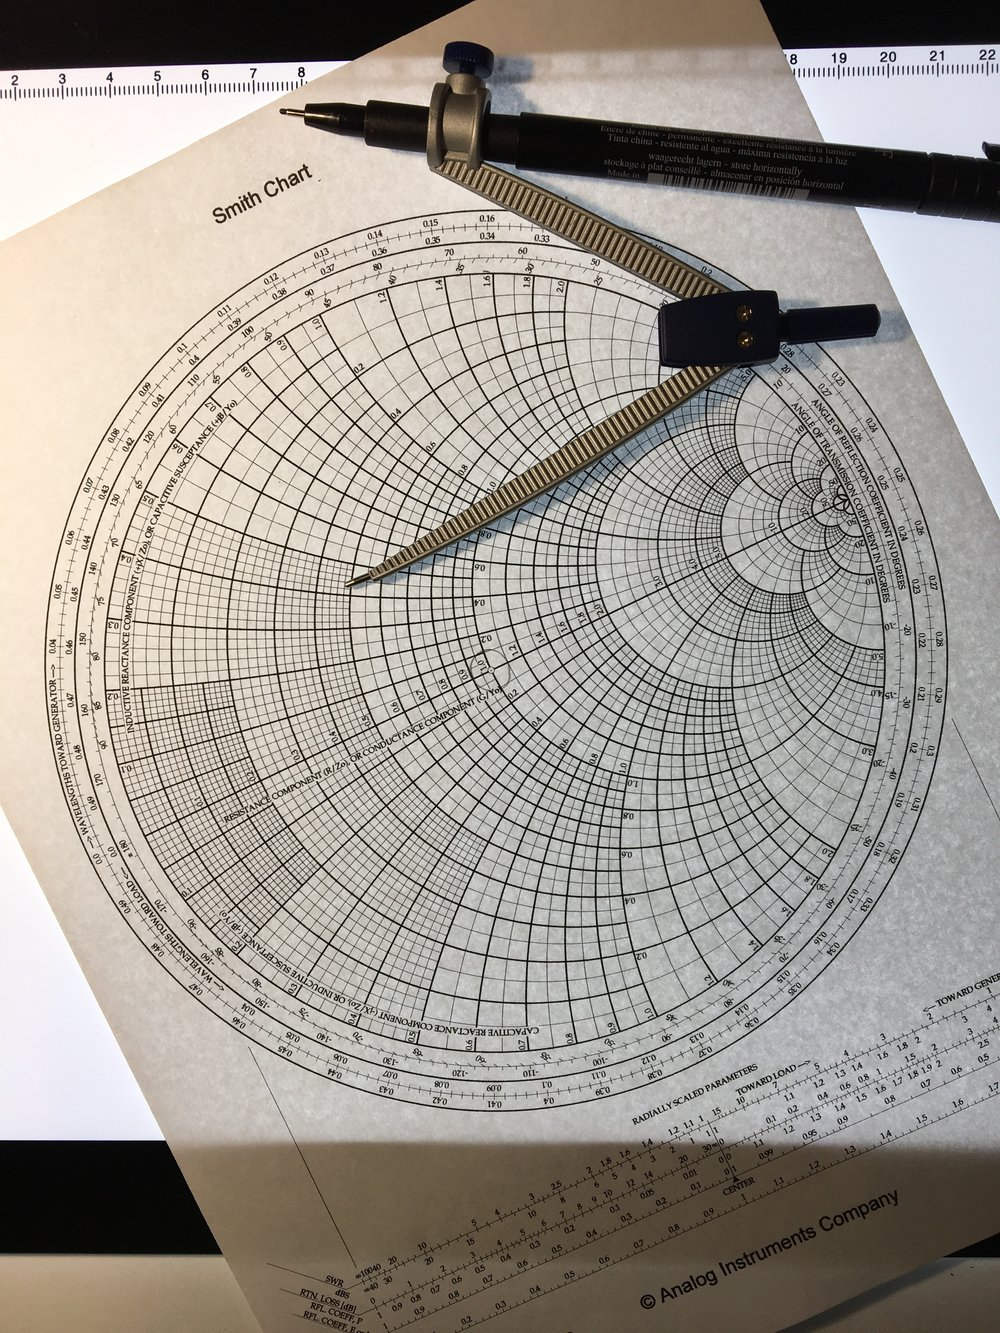 using references and developing style heidi horchler reference 1 this is a smith chart it s used to measure ohms which are some type of electronic wavelength if any electricians ever this